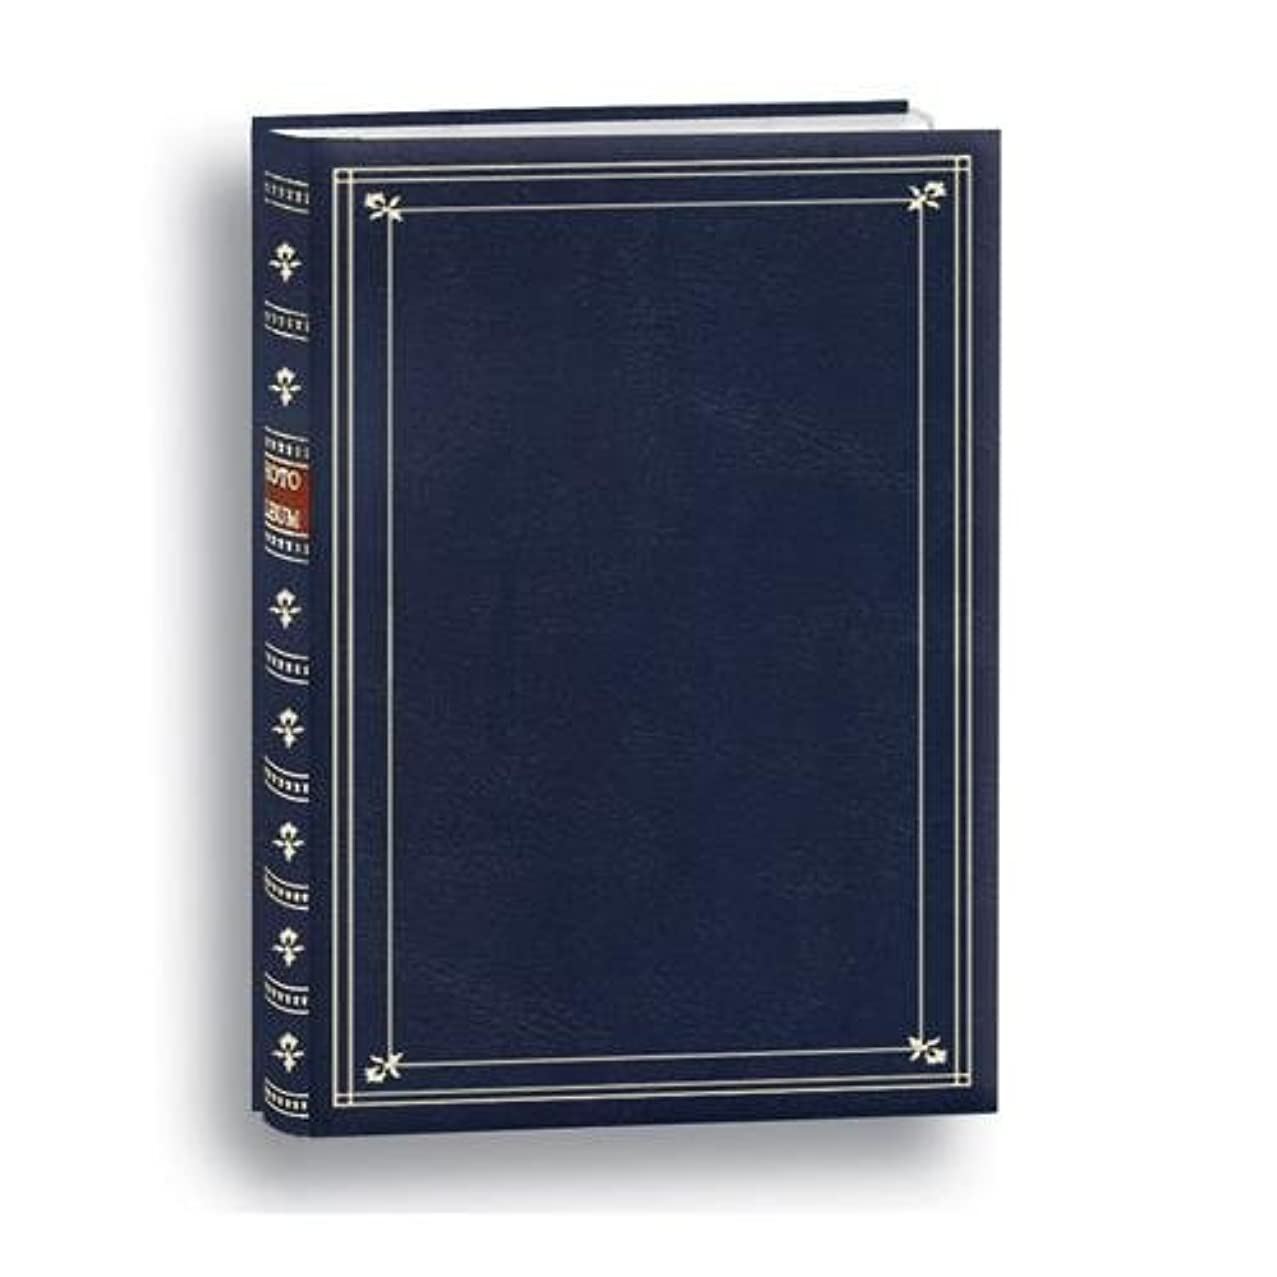 Pioneer Post Bound, Clear Pocket Photo Album with Solid Assorted Colors Covers, Holds 200 4x6 Photos, 3 Per Page, Color: Navy Blue.